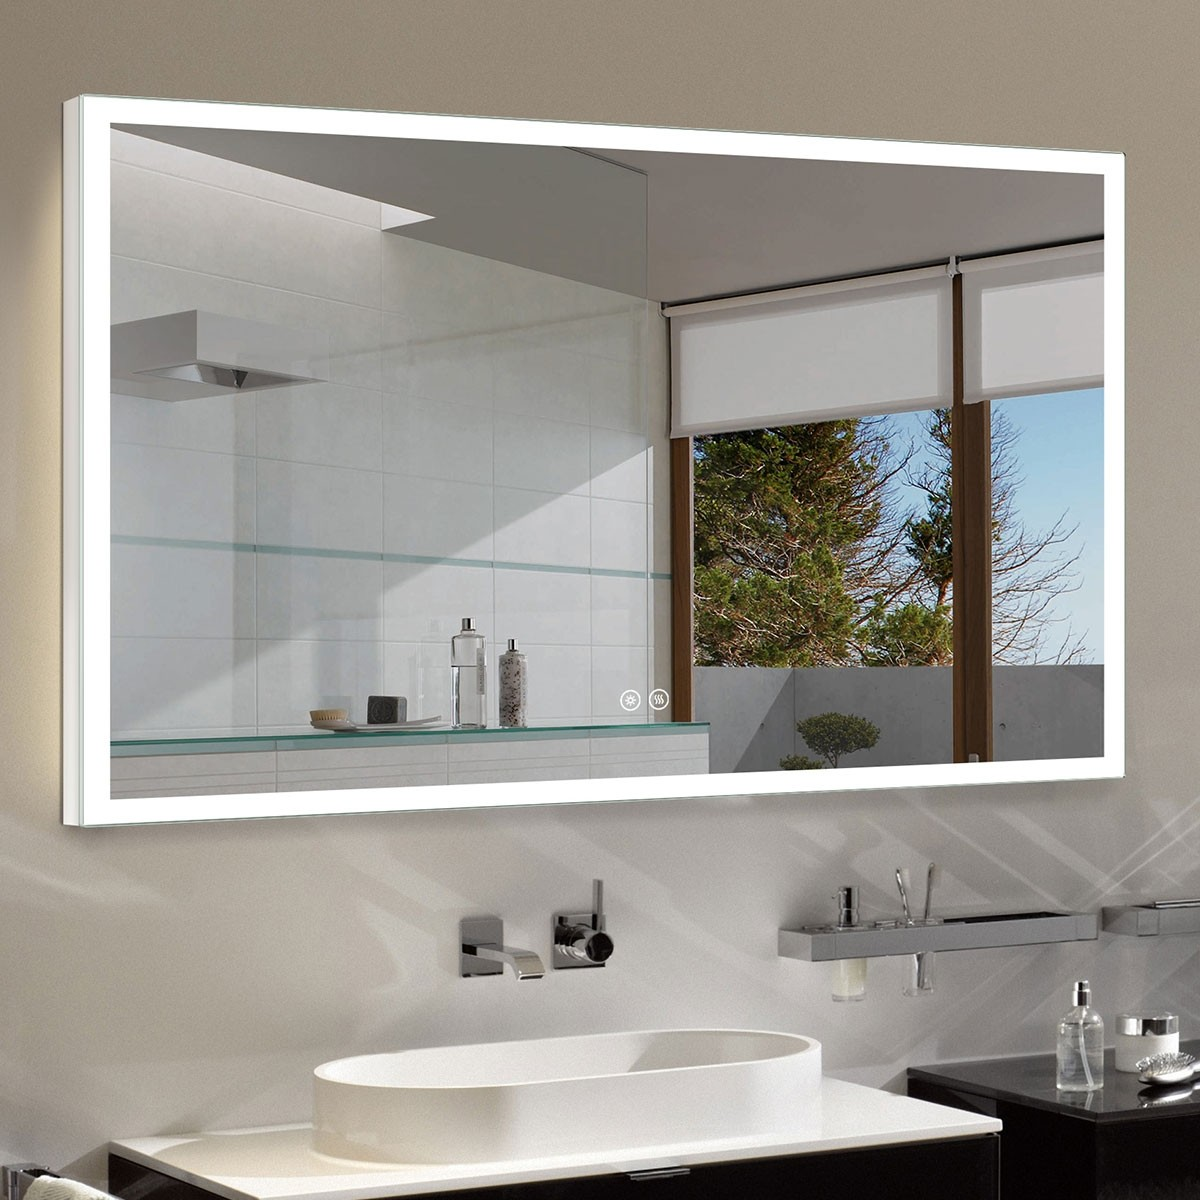 DECORAPORT 55 x 36 Inch LED Bathroom Mirror with Touch Button, Anti Fog, Dimmable, Bluetooth Speakers, Vertical & Horizontal Mount (D121-5536A)